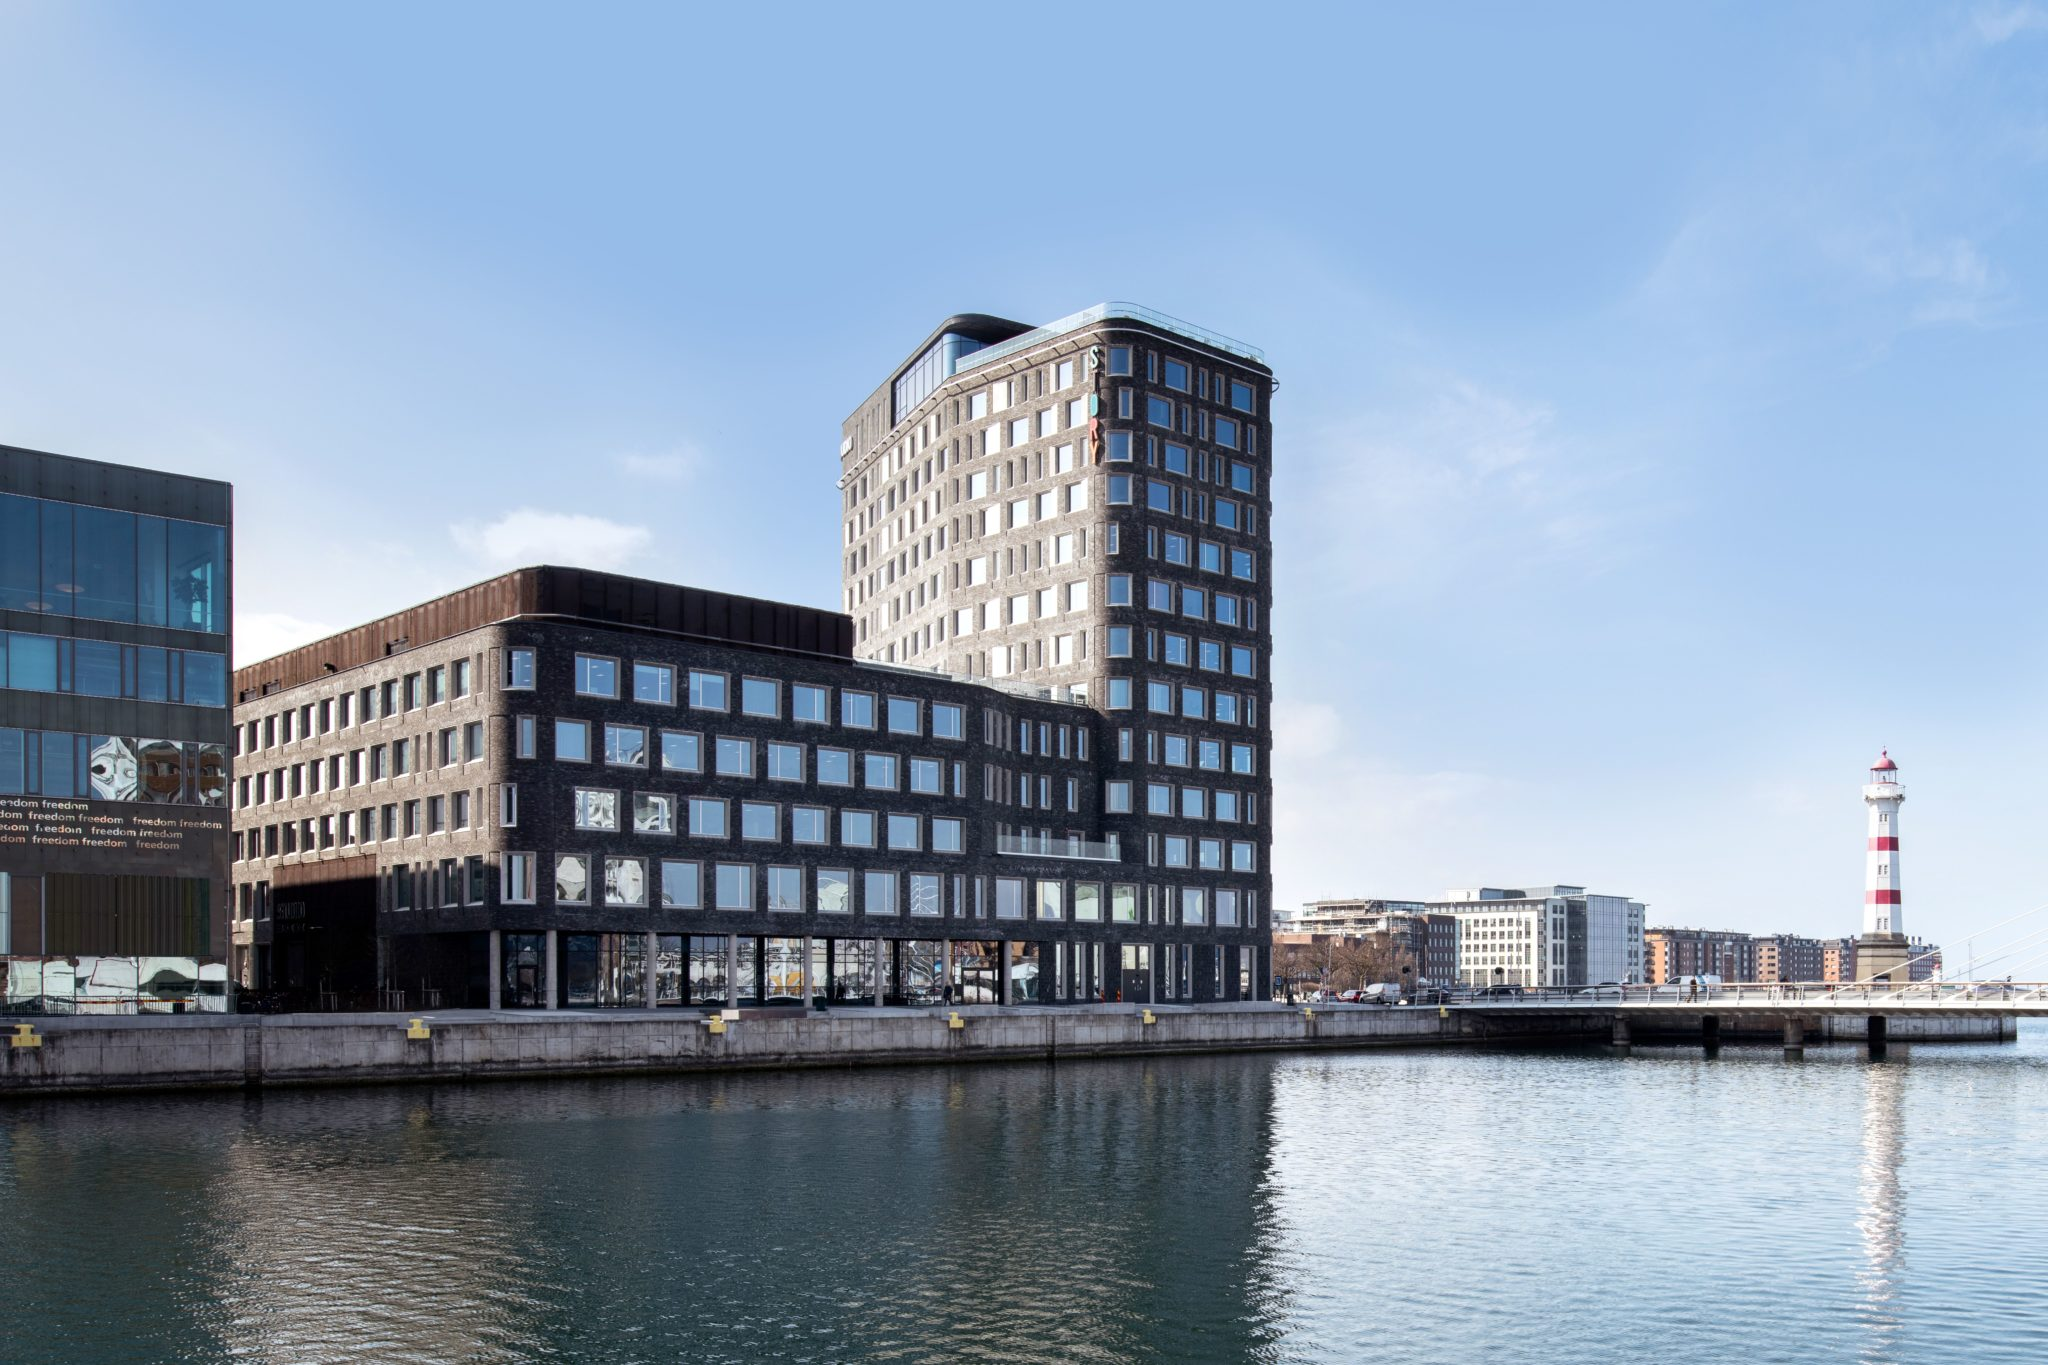 New Hyatt Hotel in Sweden